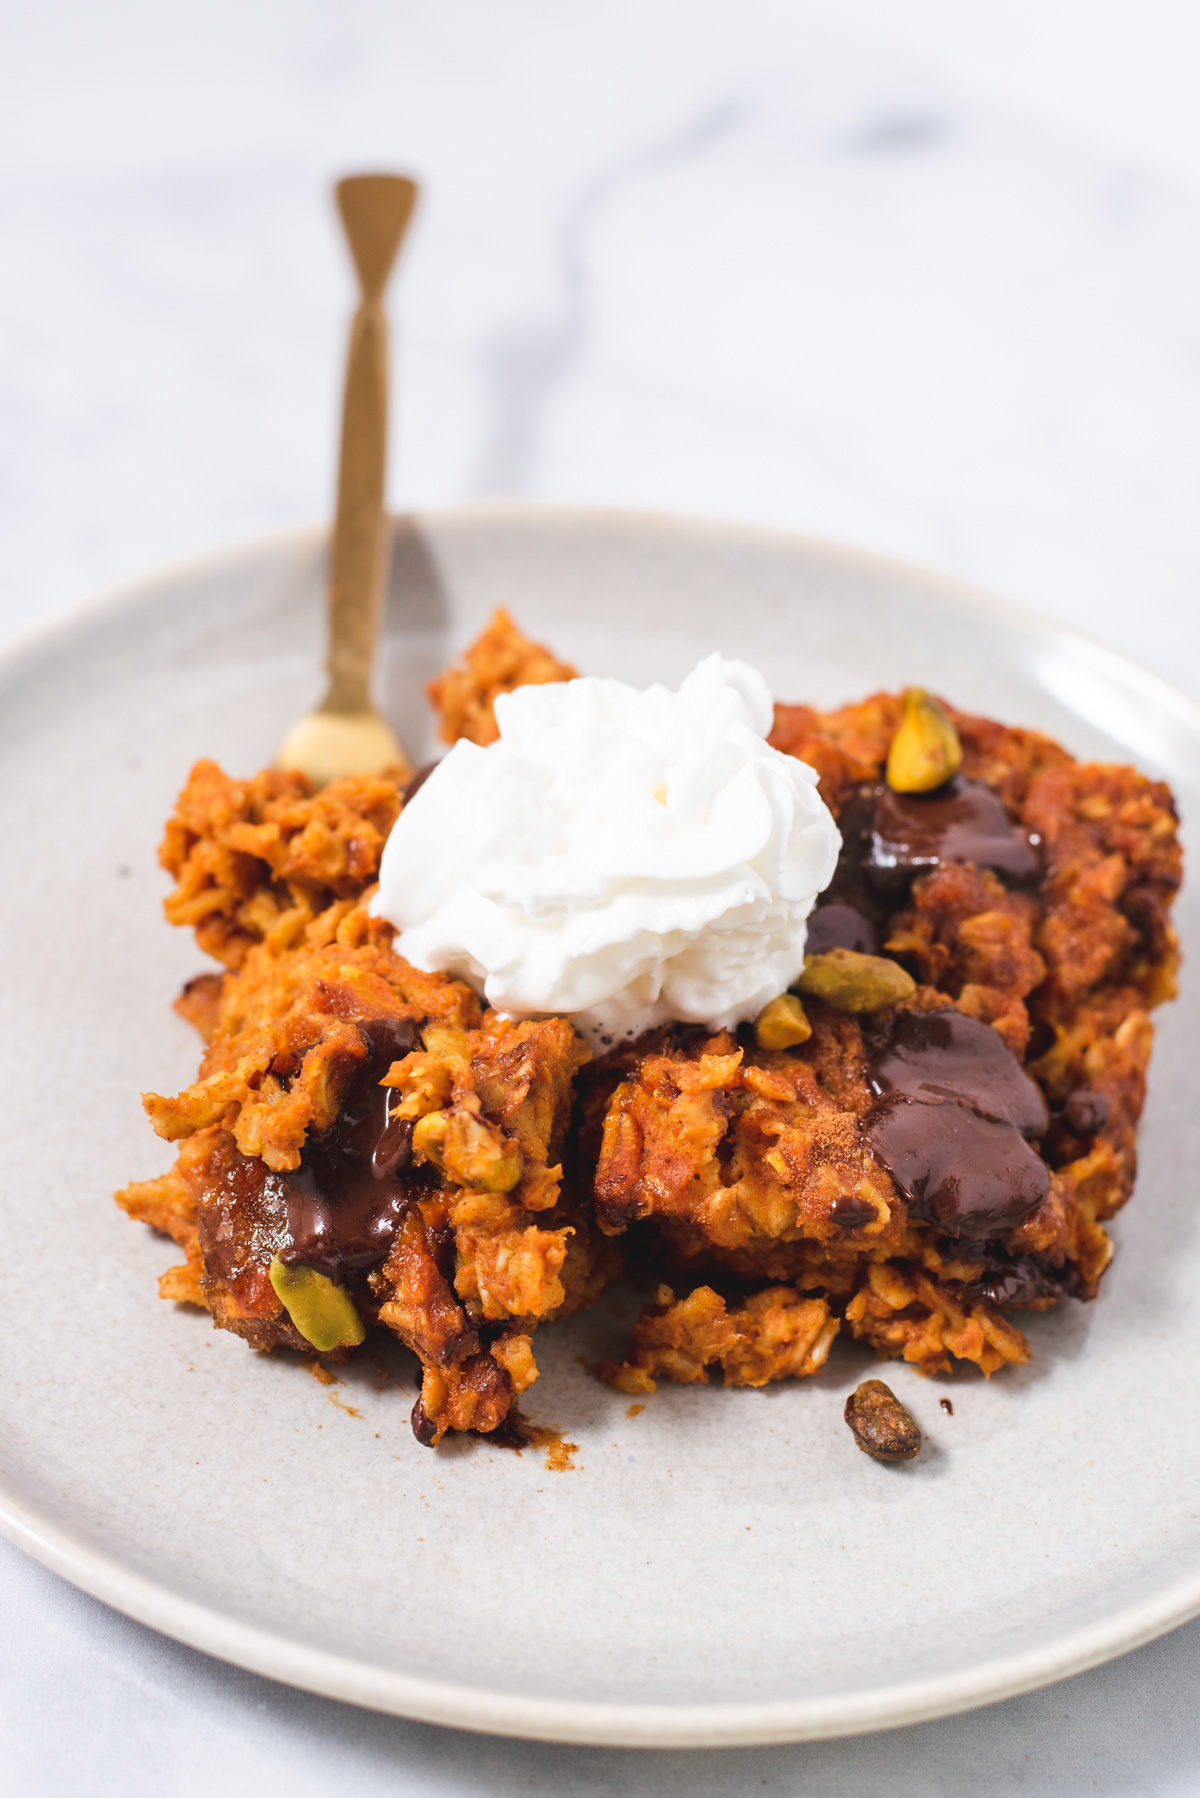 Serving of pumpkin oatmeal on a gray plate topped with whipped cream